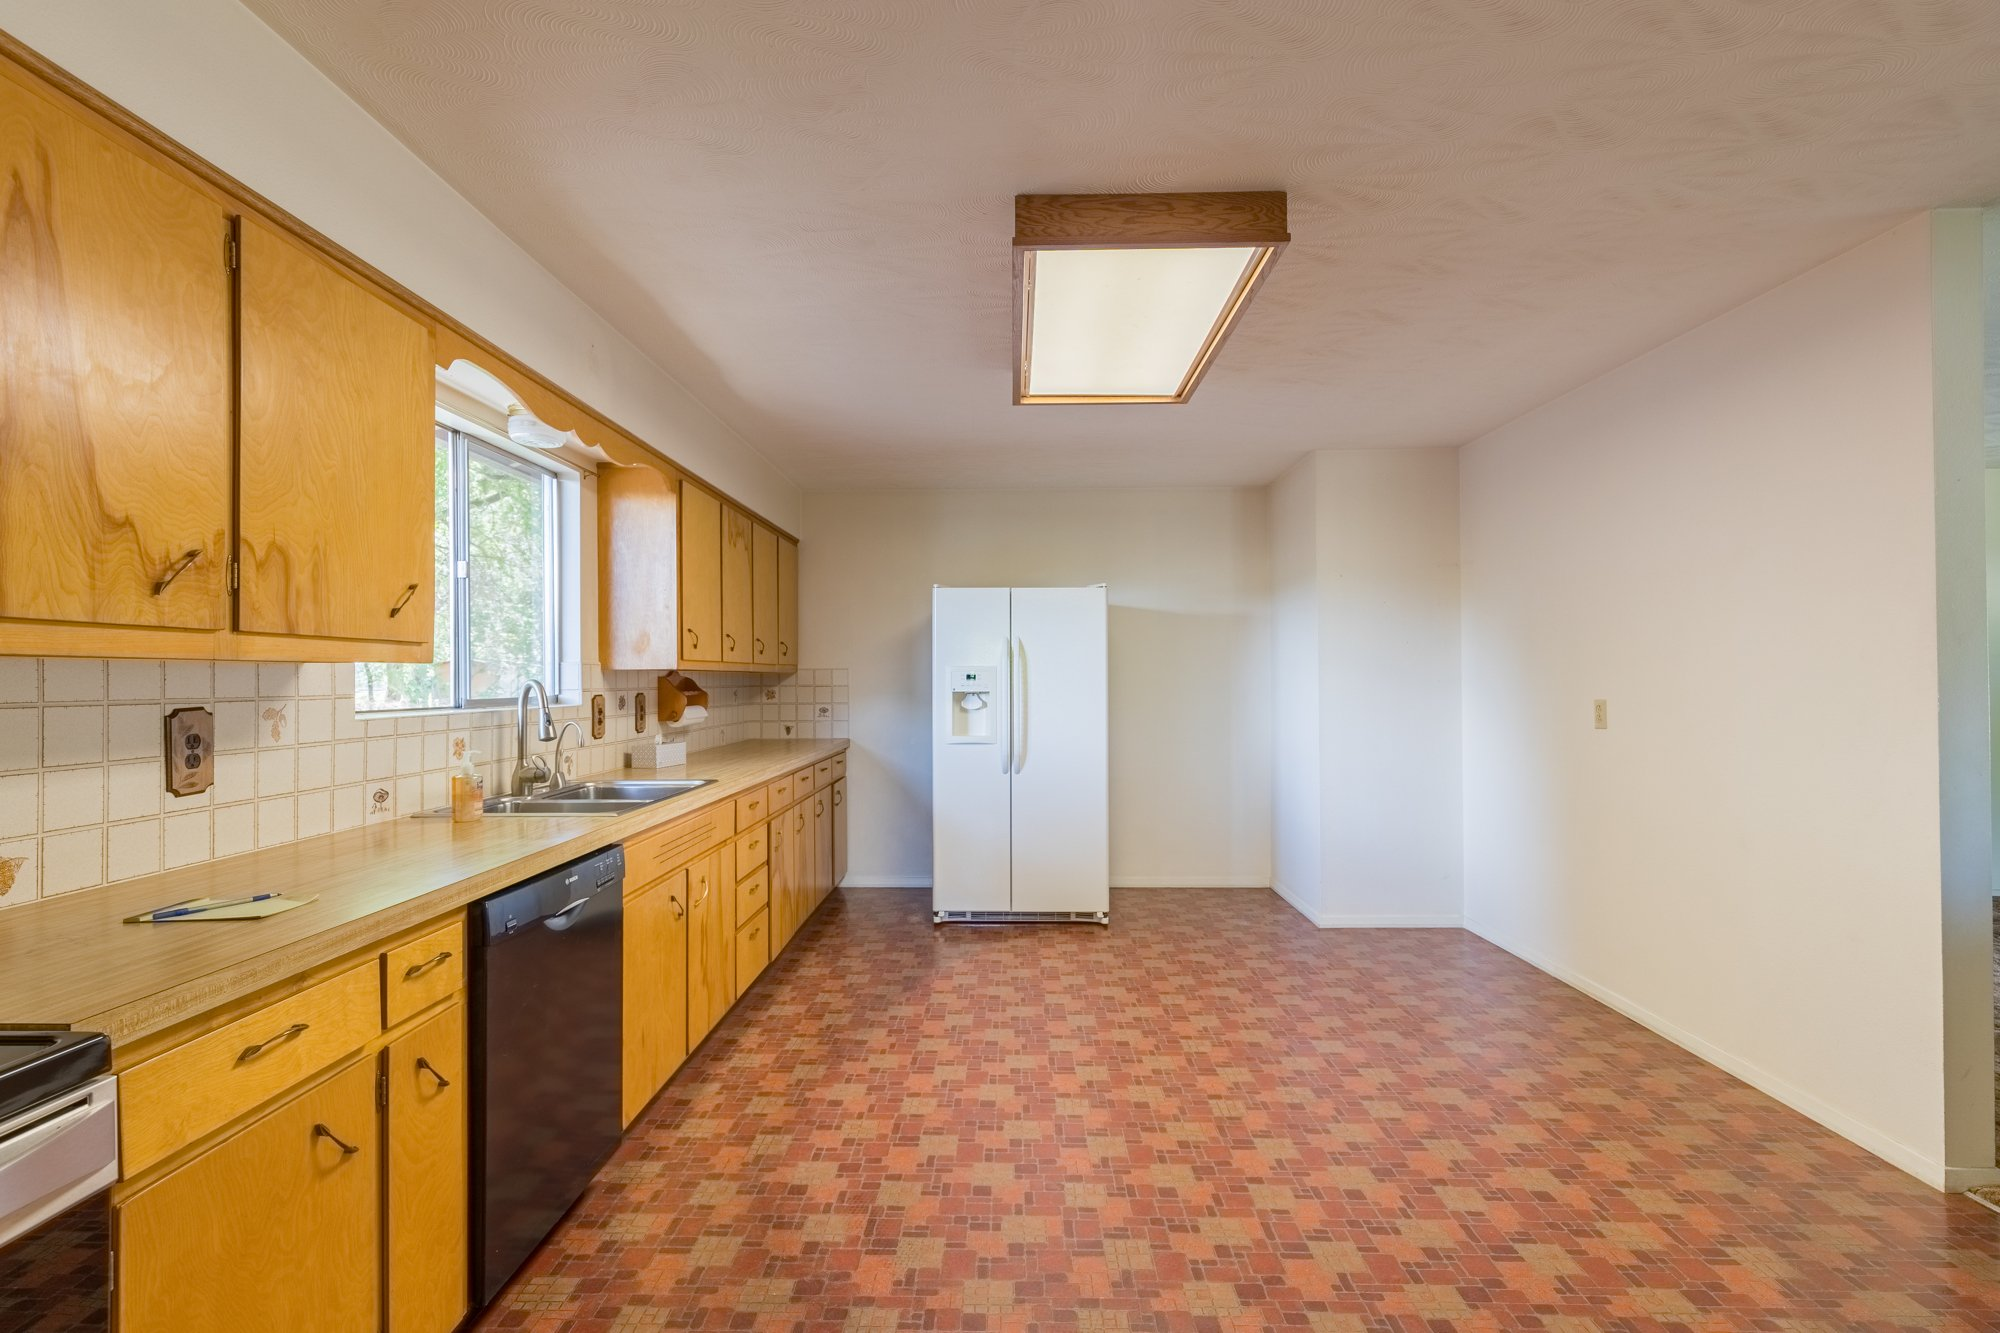 Kitchen with Refrigerator - 418 6400 Rd Montrose, CO 81403 - Atha Team Realty